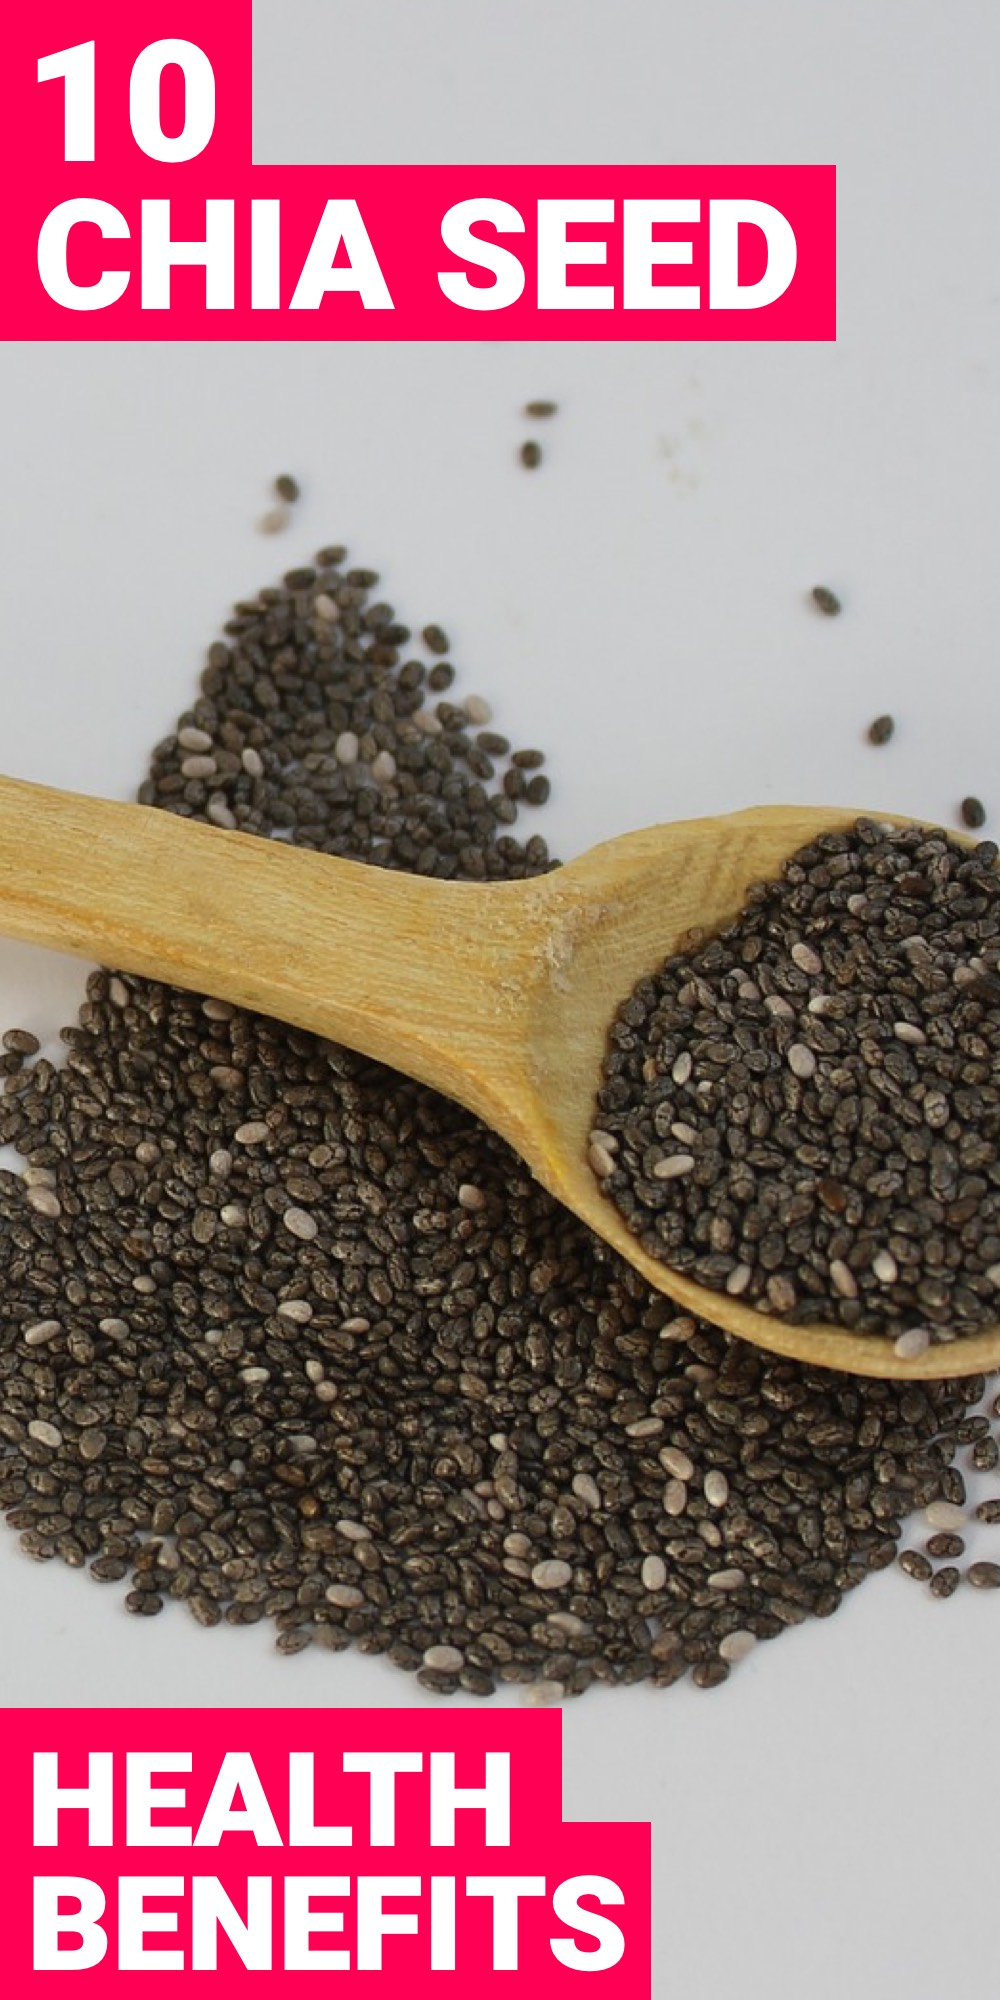 Using the health benefits of chia seeds to your advantage is something that your body will end up thanking you for. Here are 10 of those benefits.